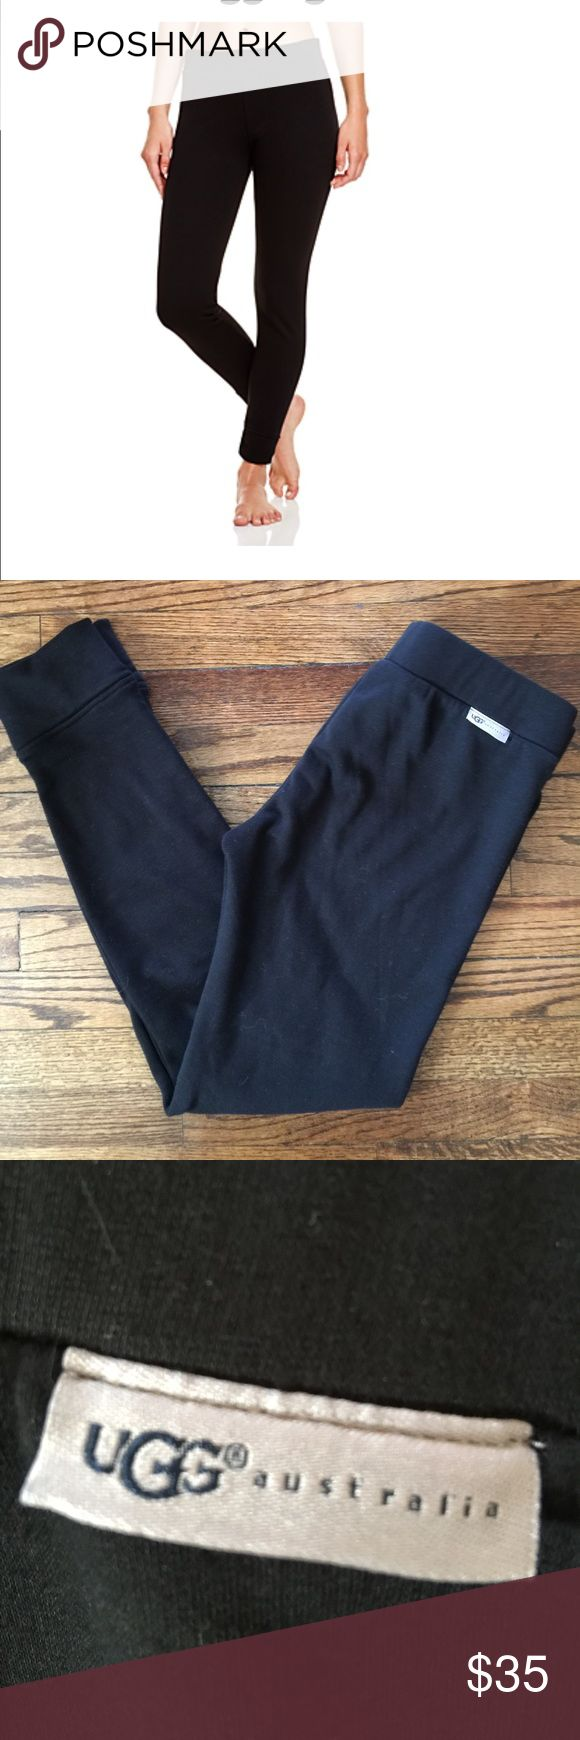 Ugg fully lined black leggings size medium black These are in great shape. Ugg brand size medium and no rips of stains. They are size medium and have a 28 inch inseam. Retail for $75 UGG Pants Leggings